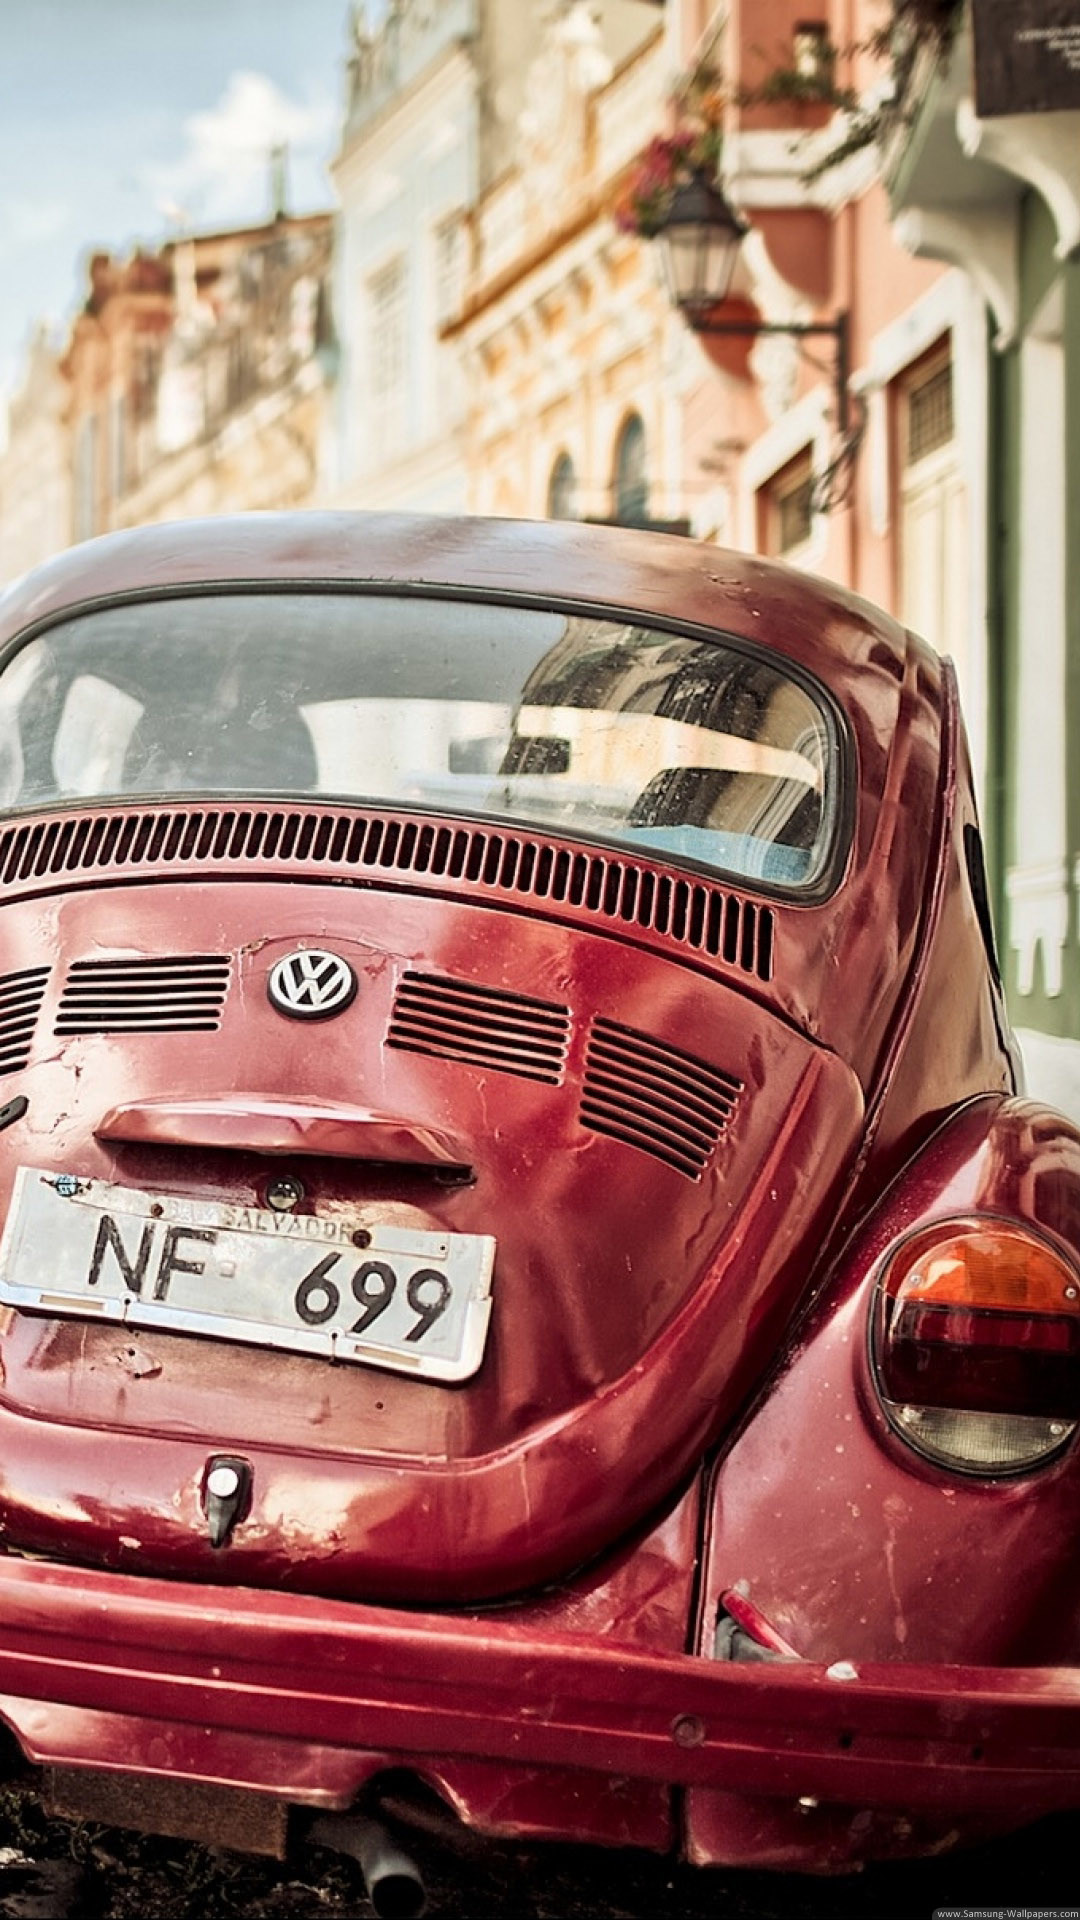 Vintage Volkswagen Beetle iPhone 6 Plus HD Wallpaper –  https://freebestpicture.com